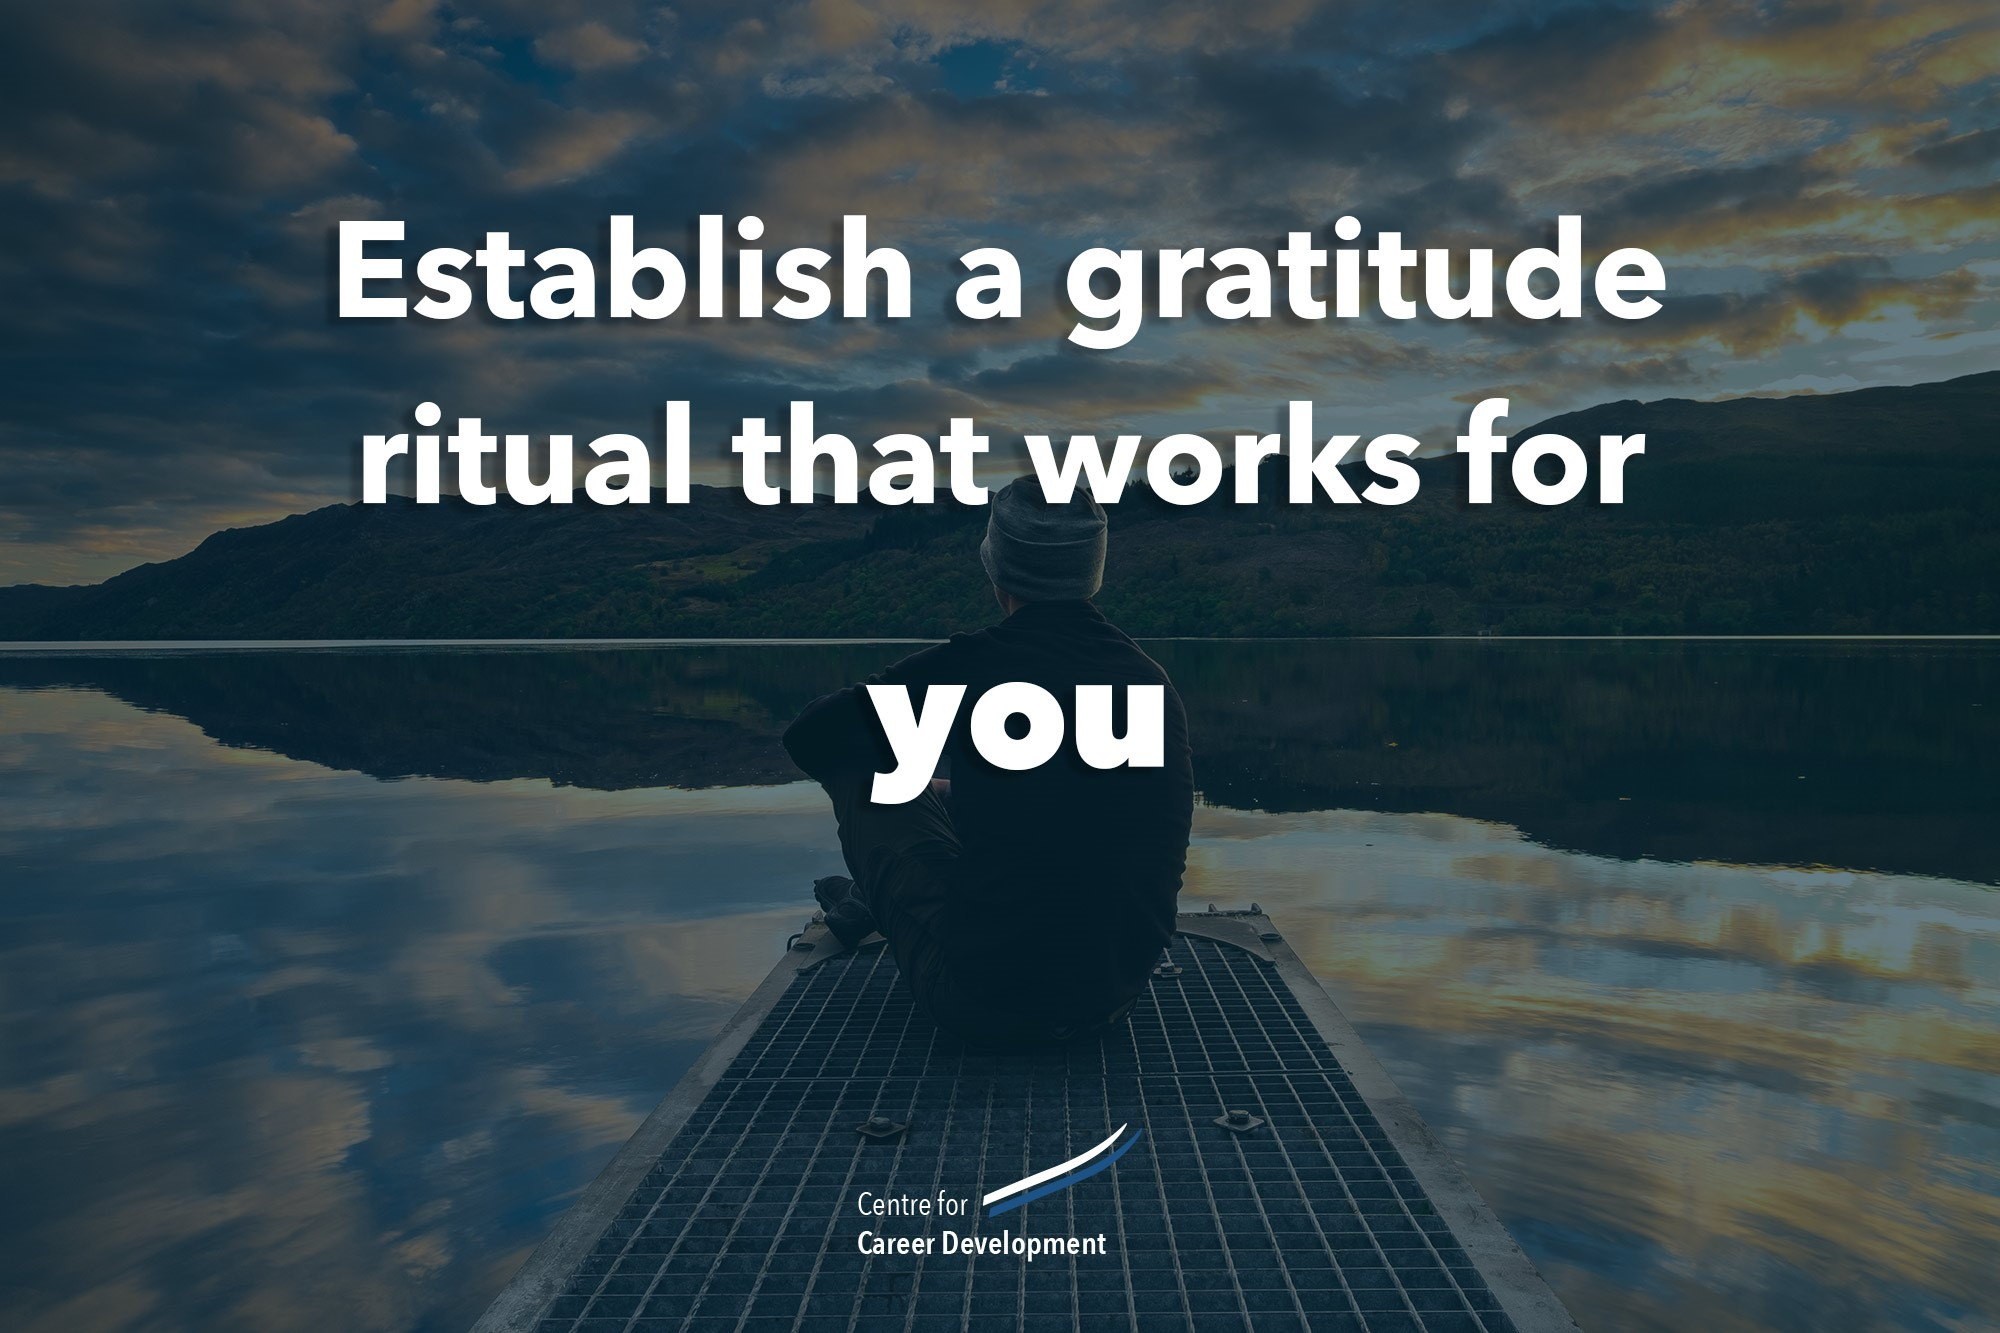 Gratitude Ritual 5 Tips to Help Practice Gratitude (and Make it a Habit in 2017)